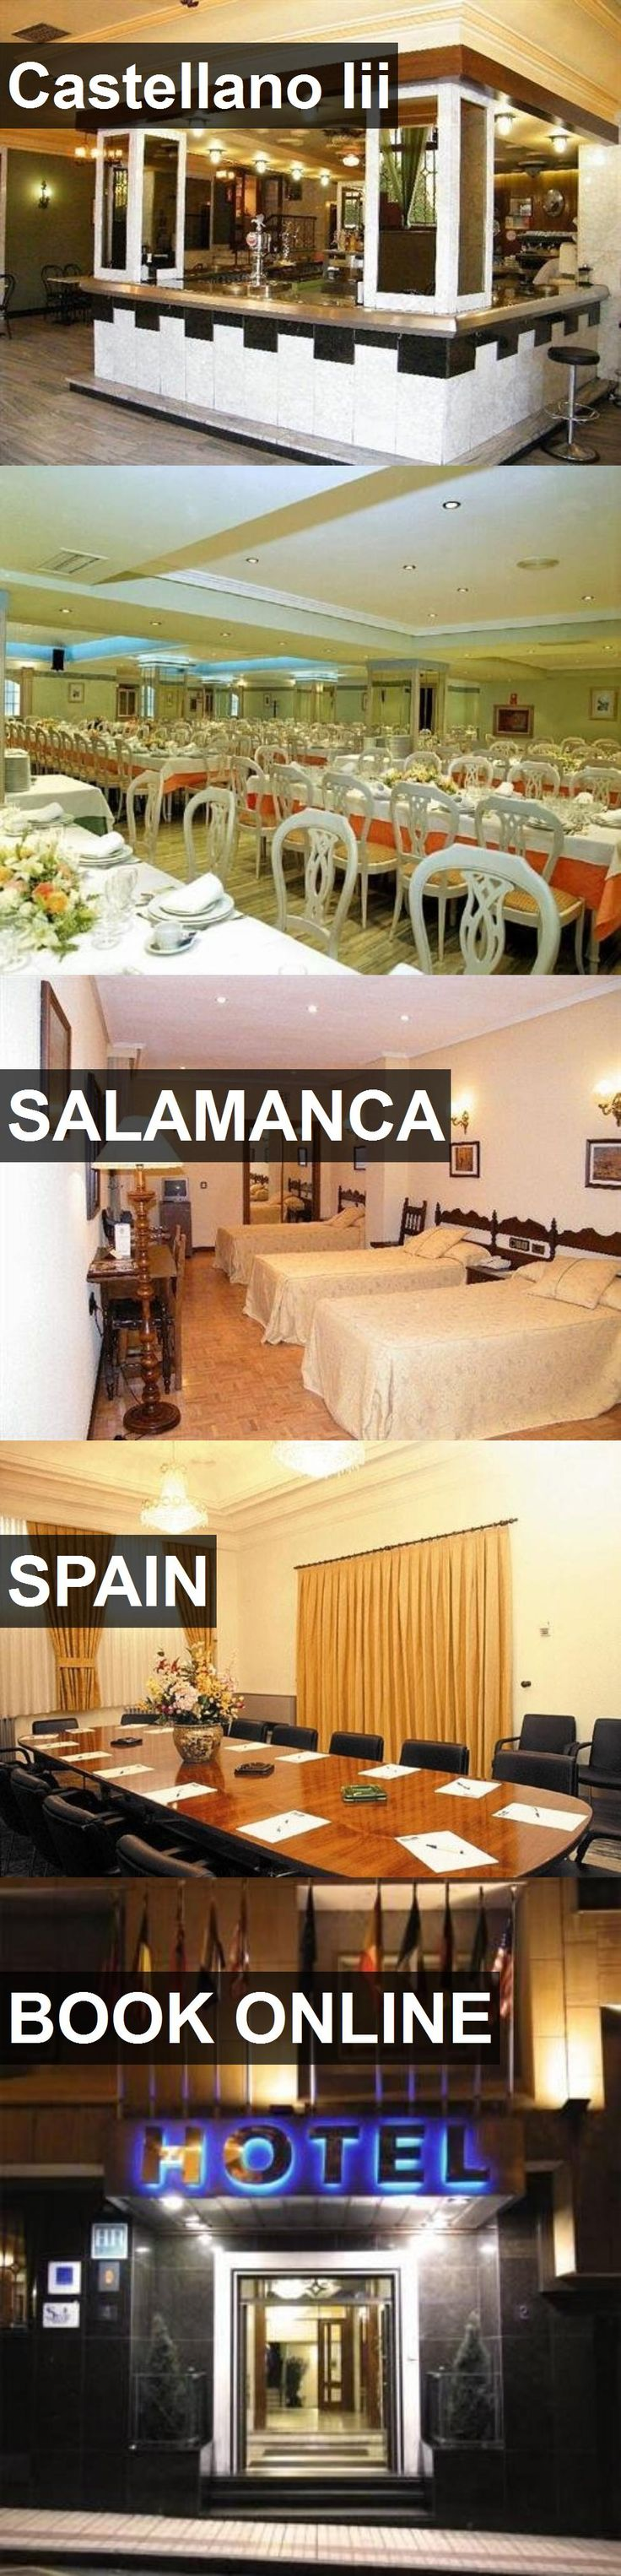 Hotel Castellano Iii in Salamanca, Spain. For more information, photos, reviews and best prices please follow the link. #Spain #Salamanca #travel #vacation #hotel